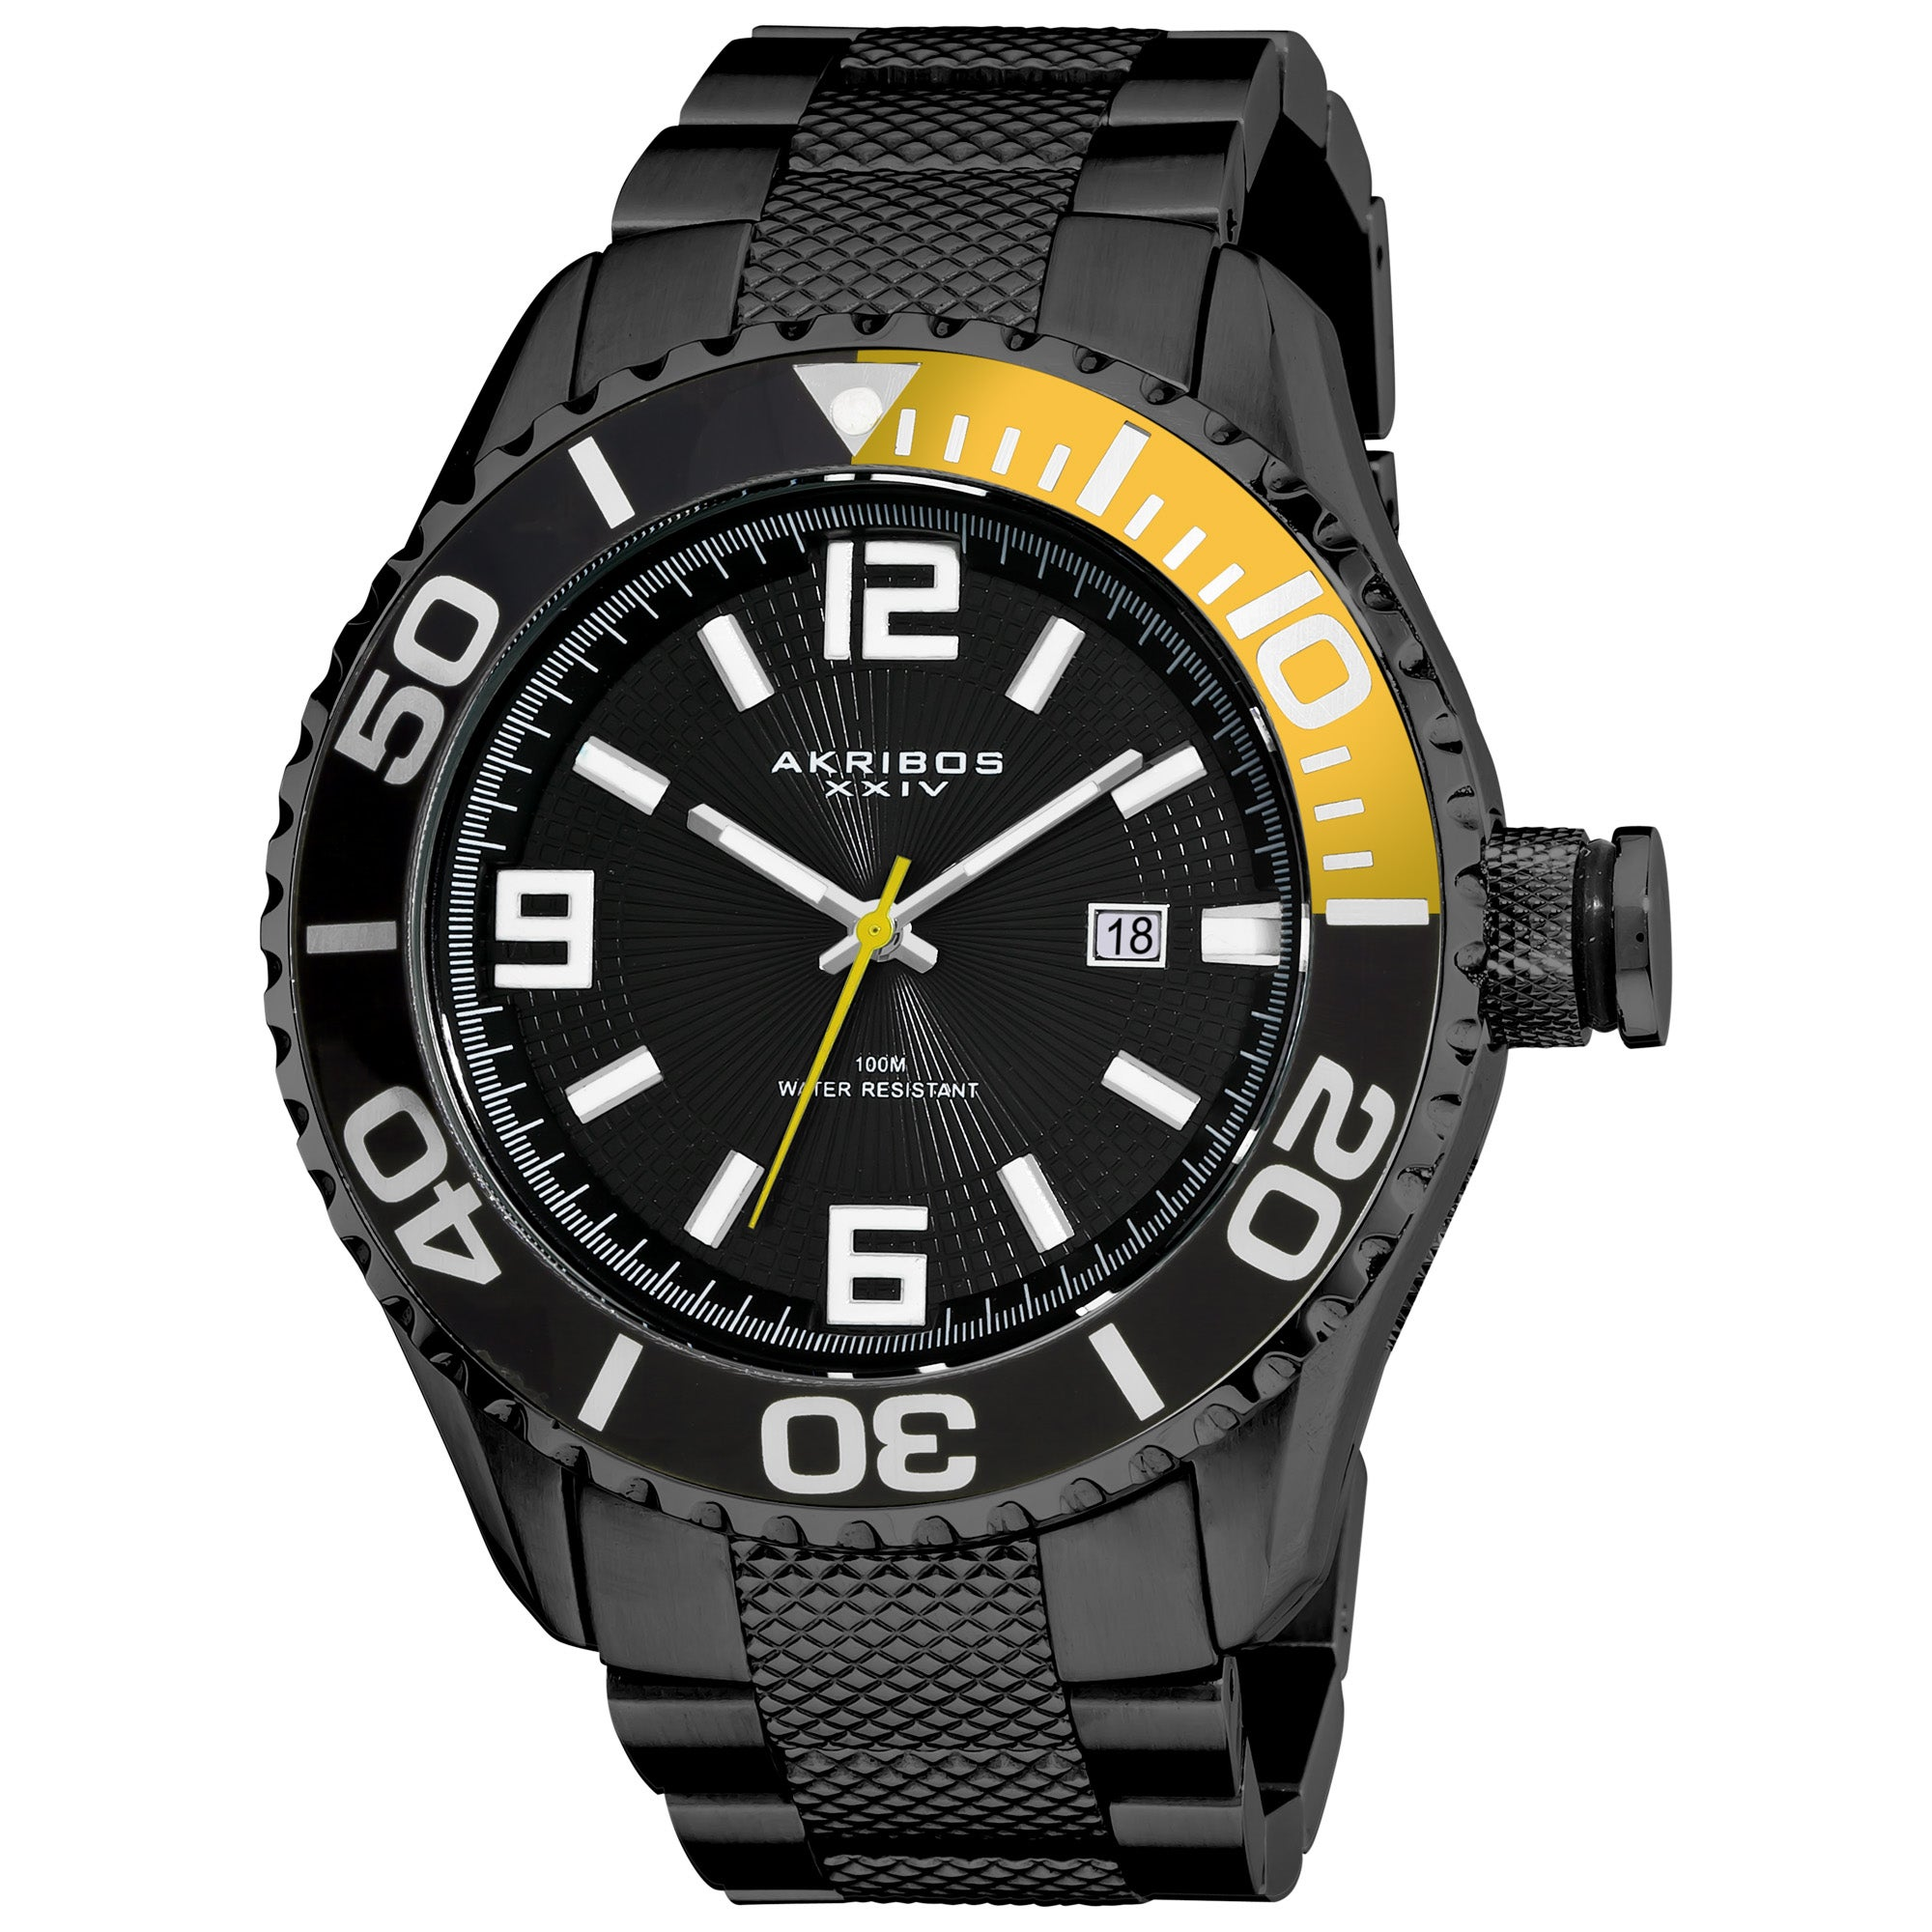 Akribos XXIV Men's Black Stainless Steel Large Diver's Watch in Ion Plated Black Finish